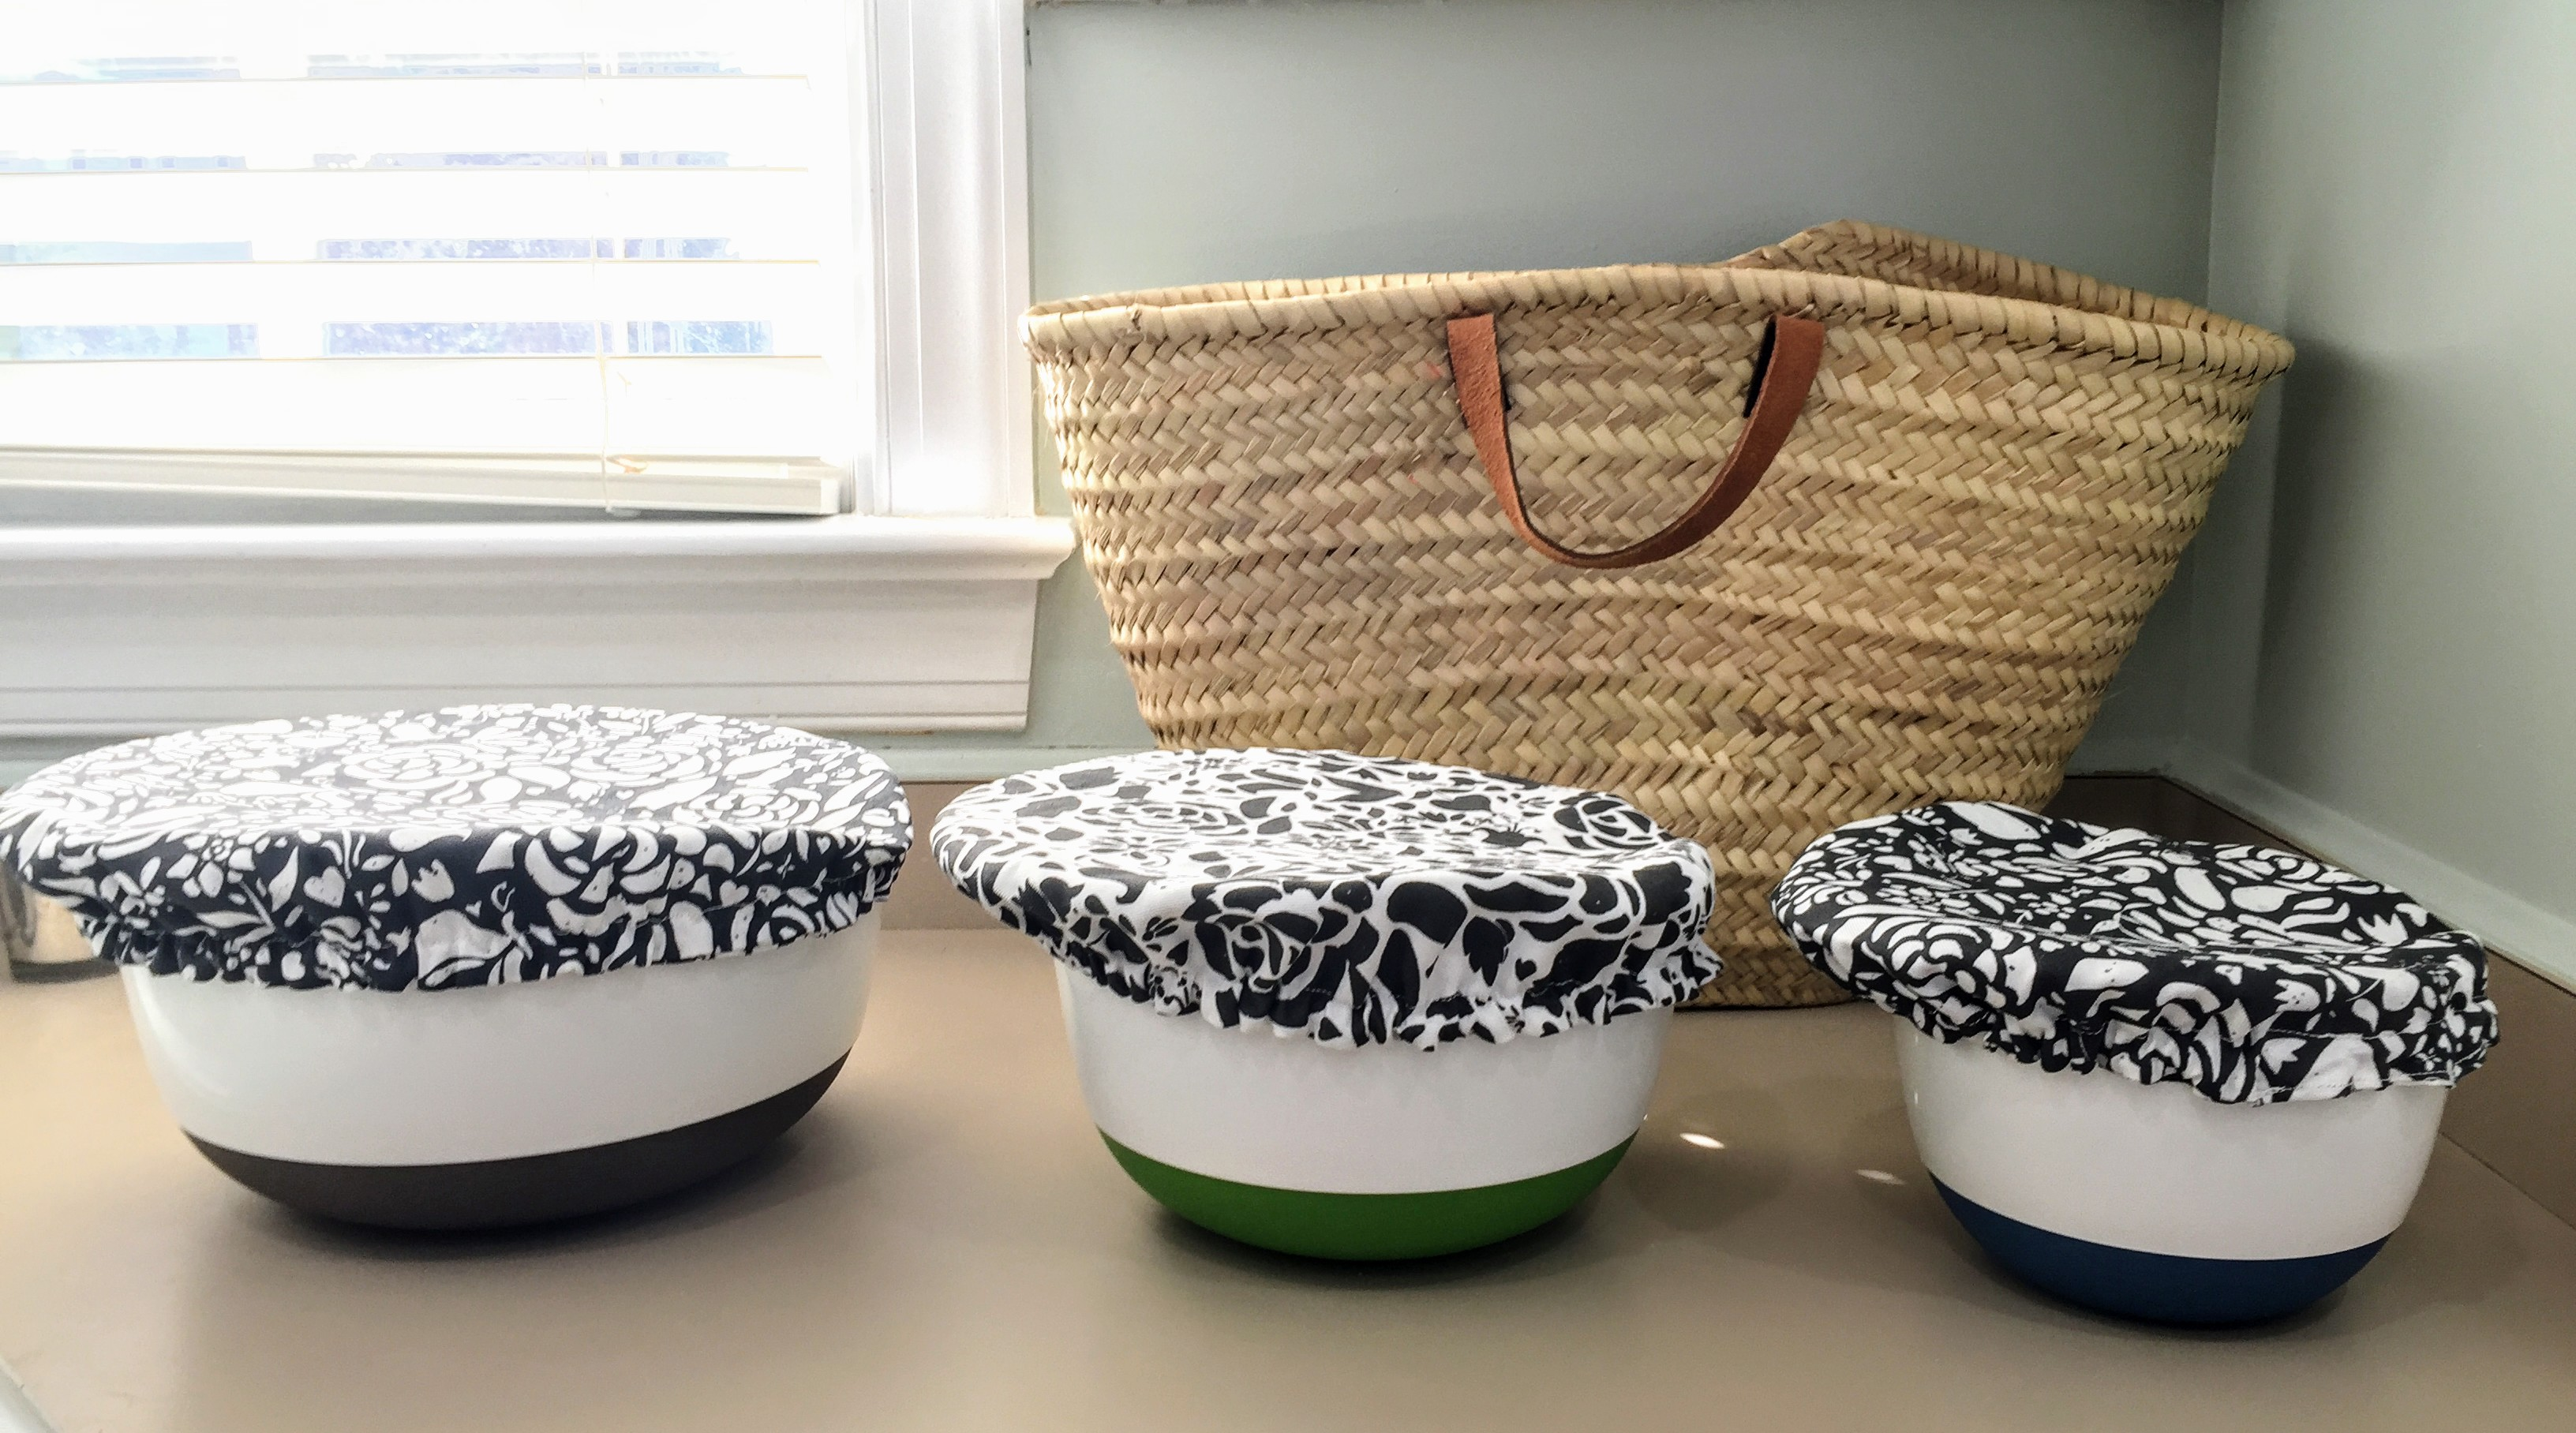 Three bowls with three pretty new bowl covers